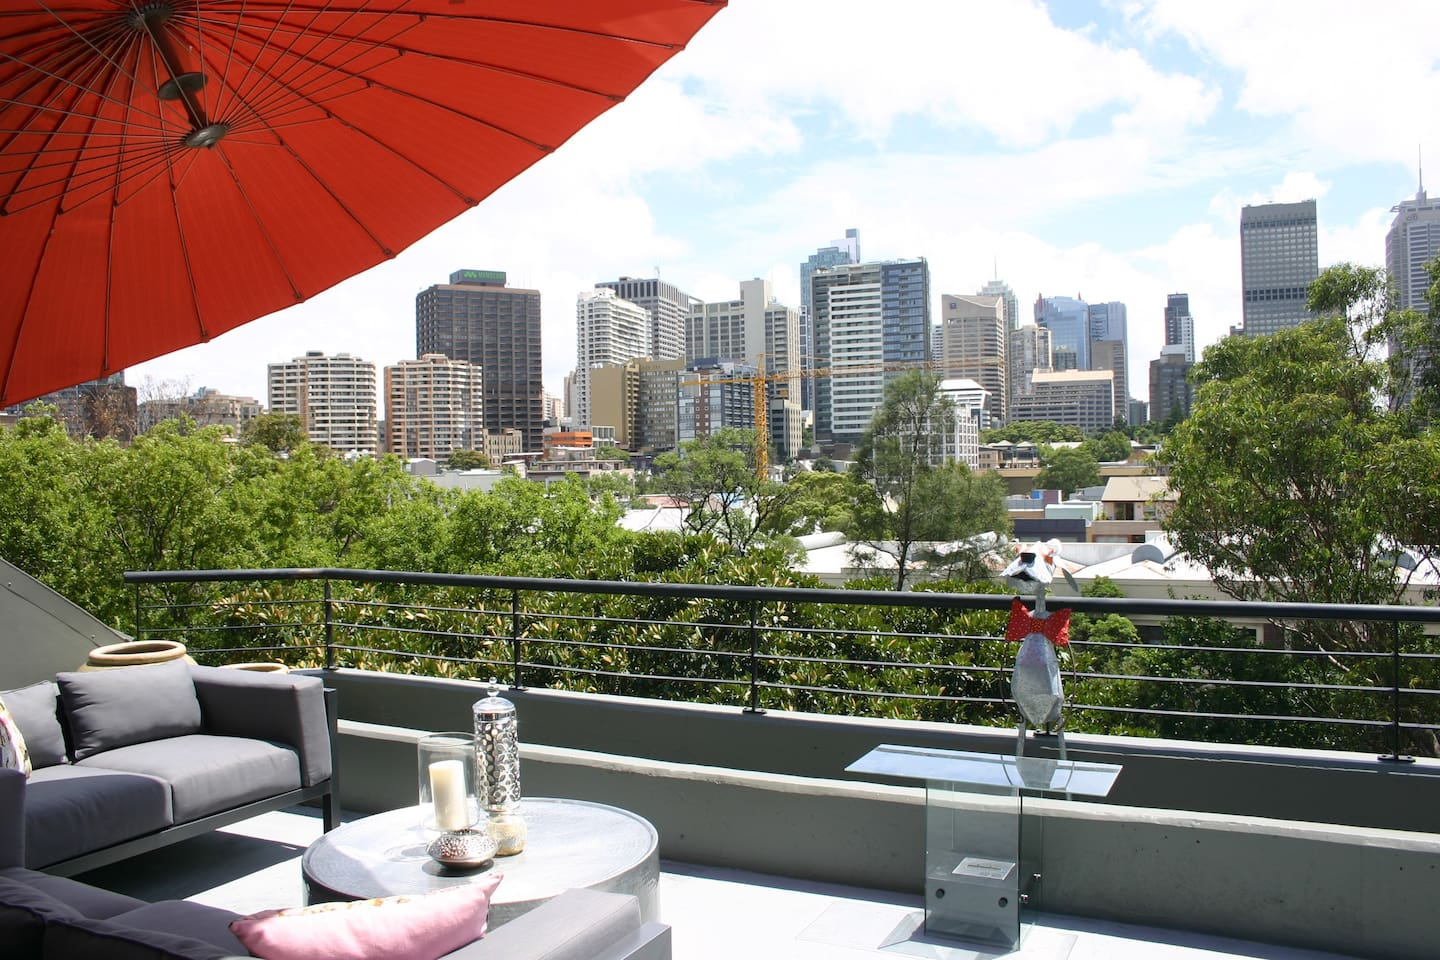 The Roof Terrace with a priceless view of the city